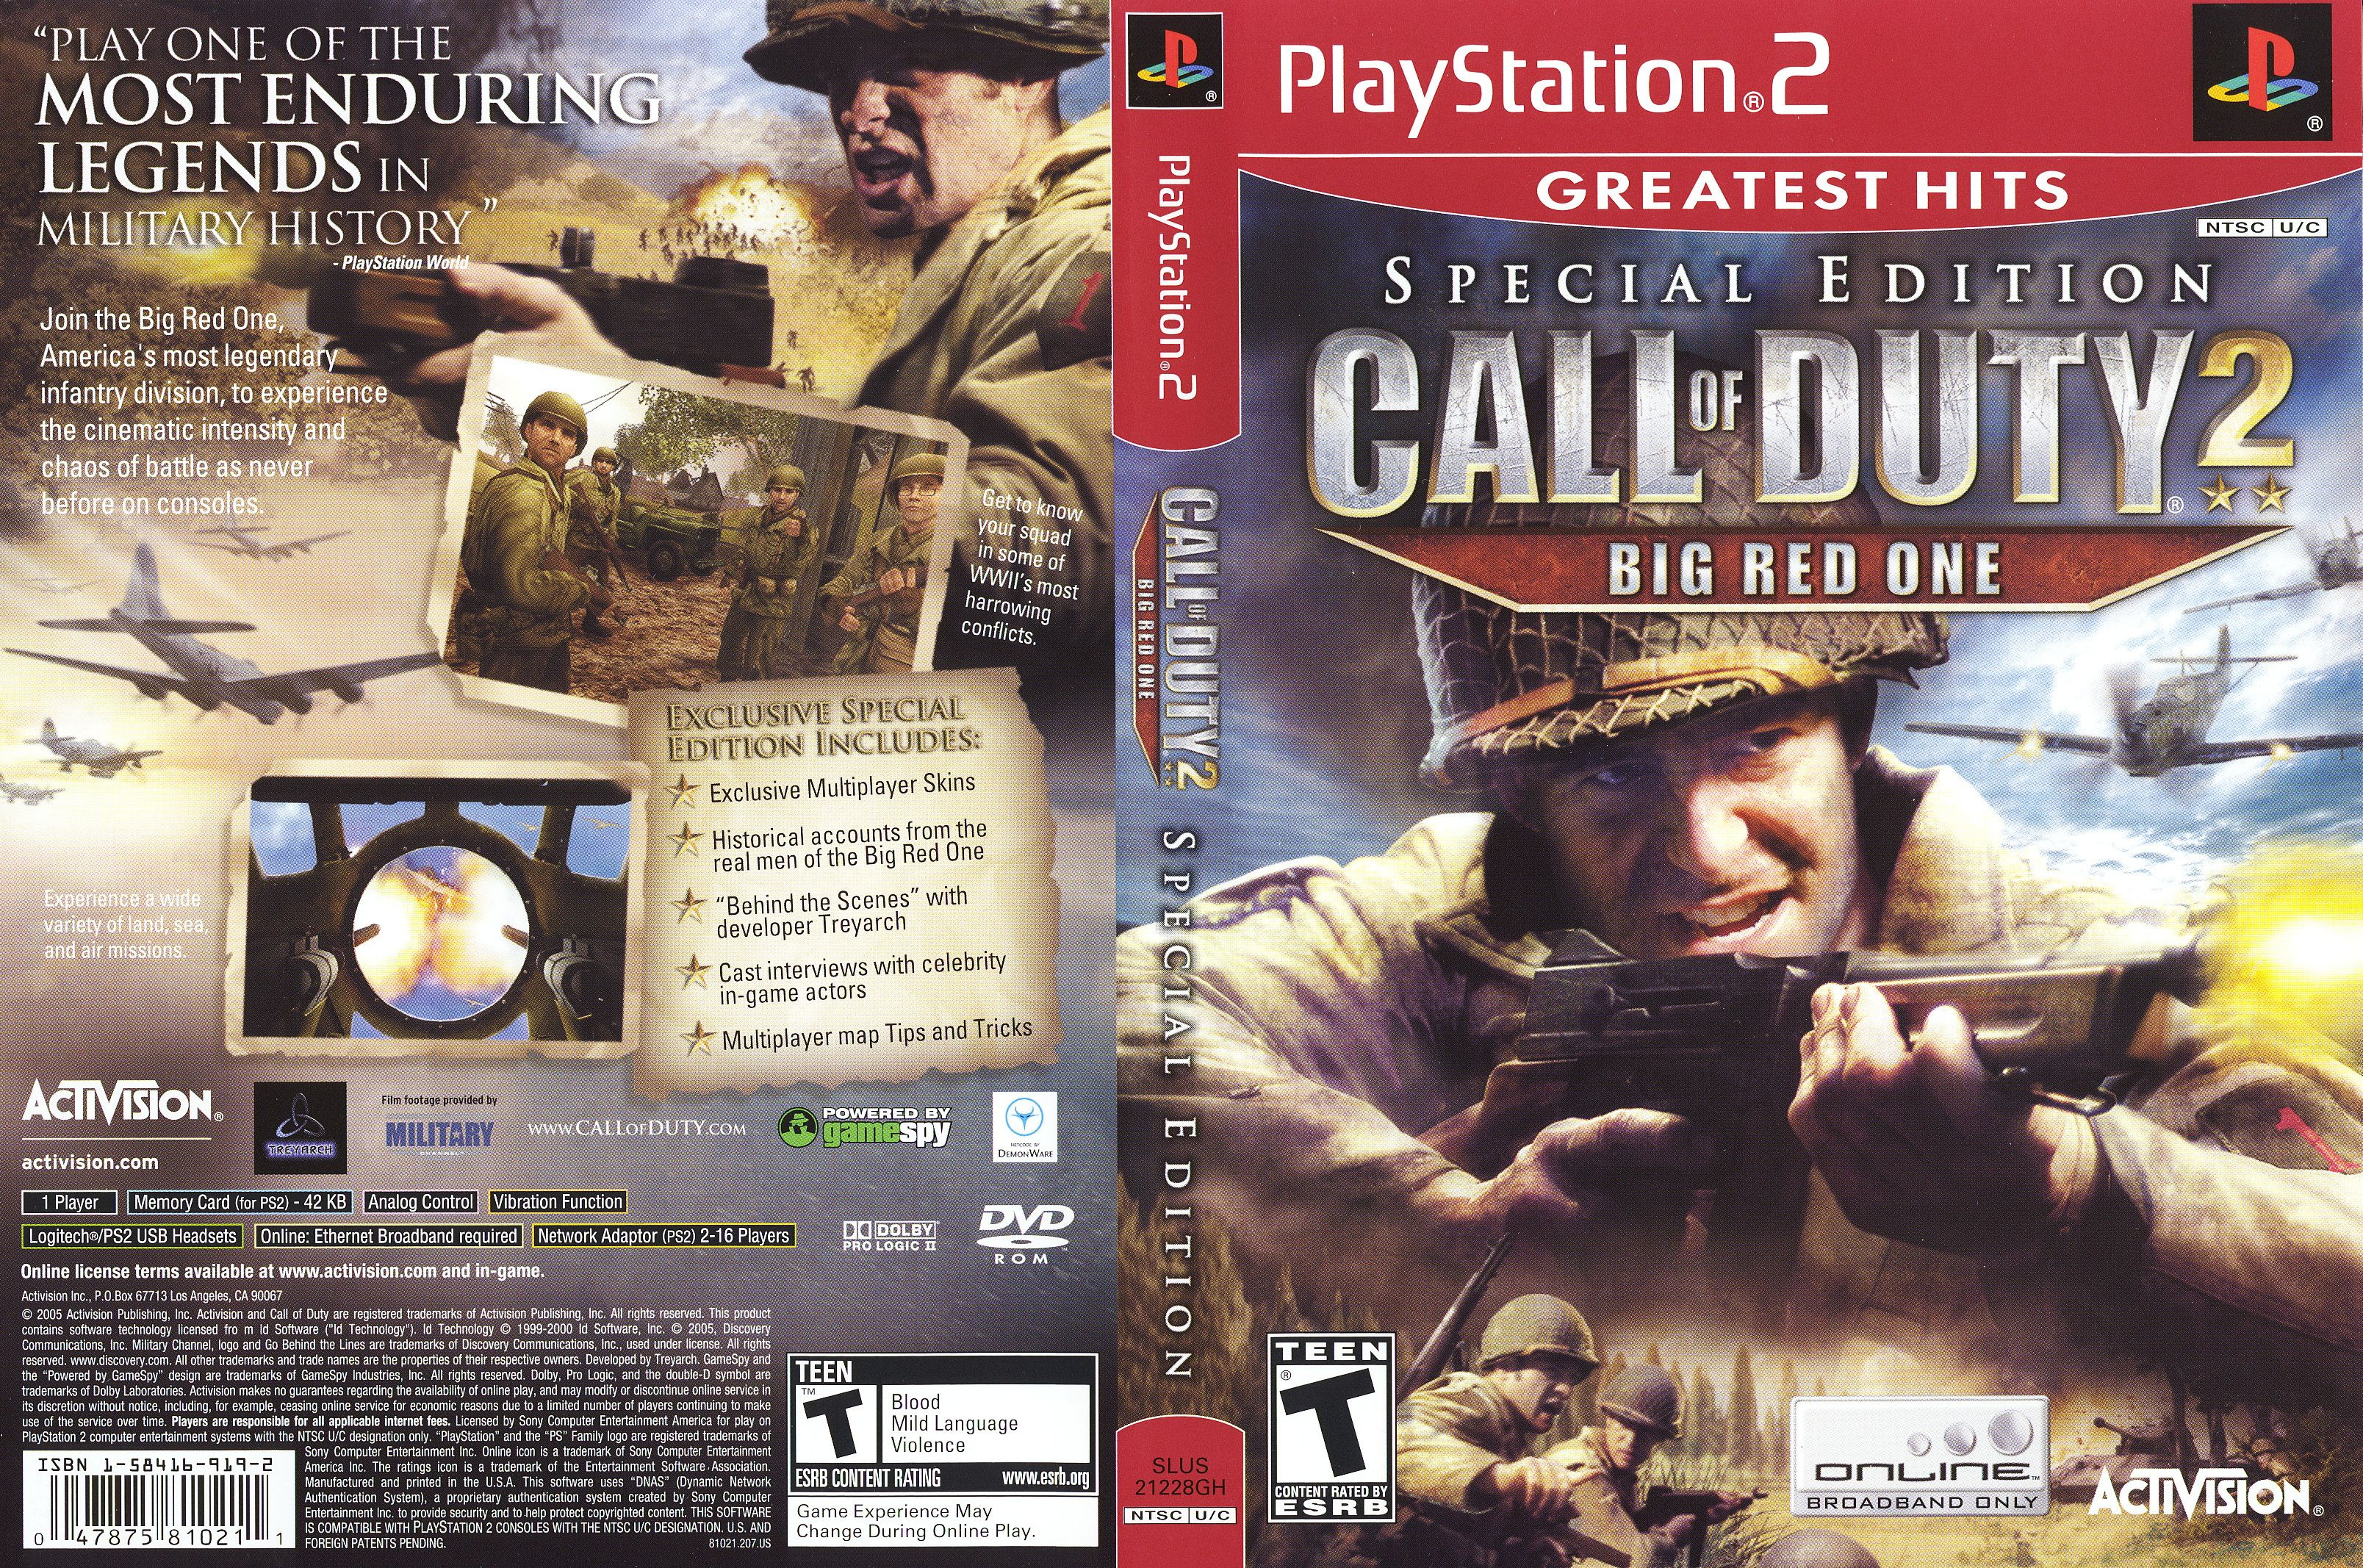 Call Of Duty 2 The Big Red One The Big Red One Book Cover Military History